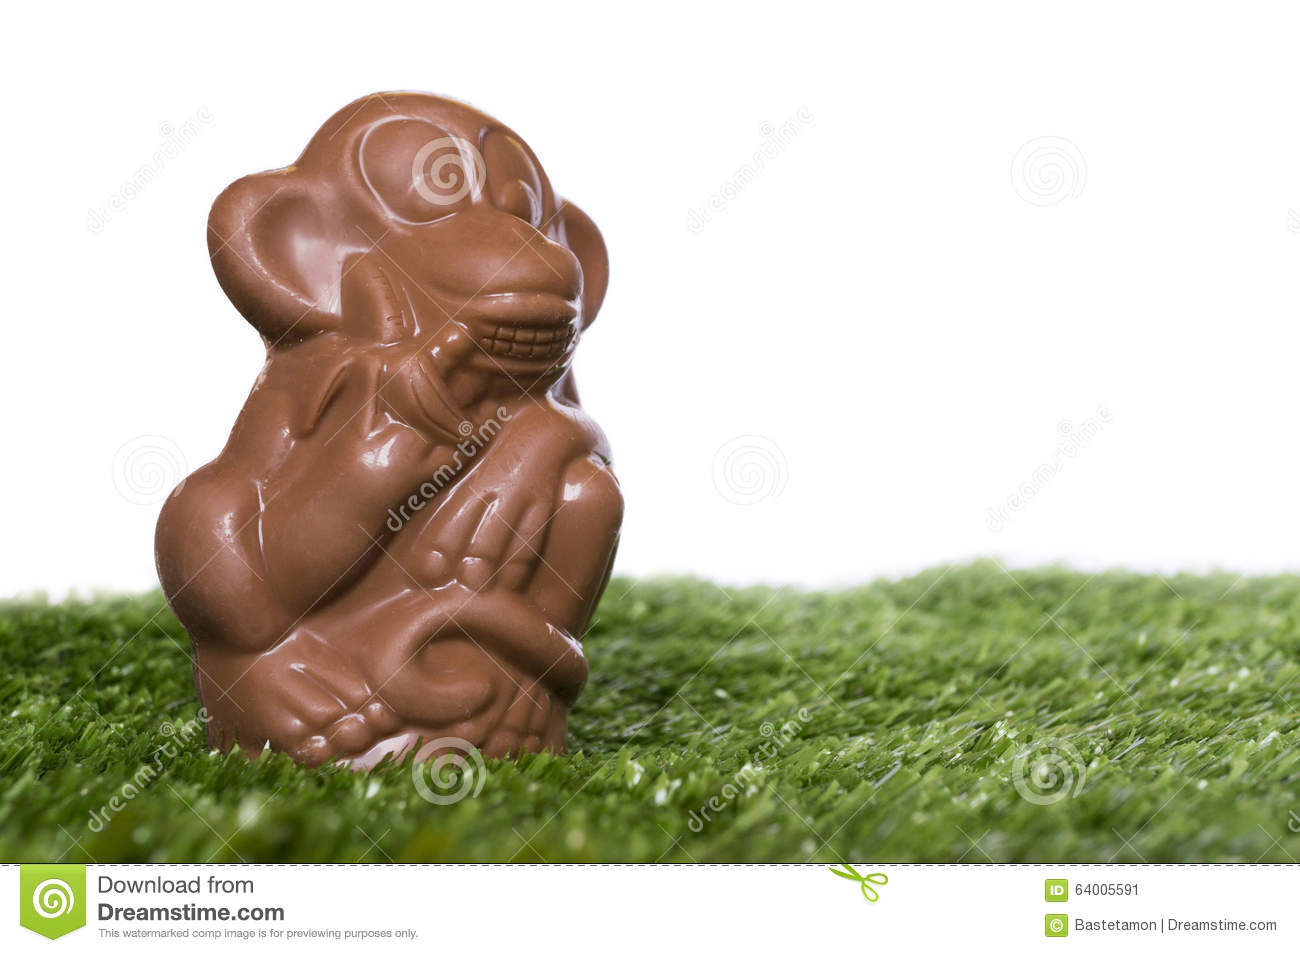 Chocolate Monkey On The Grass Stock Illustration - Image: 64005591